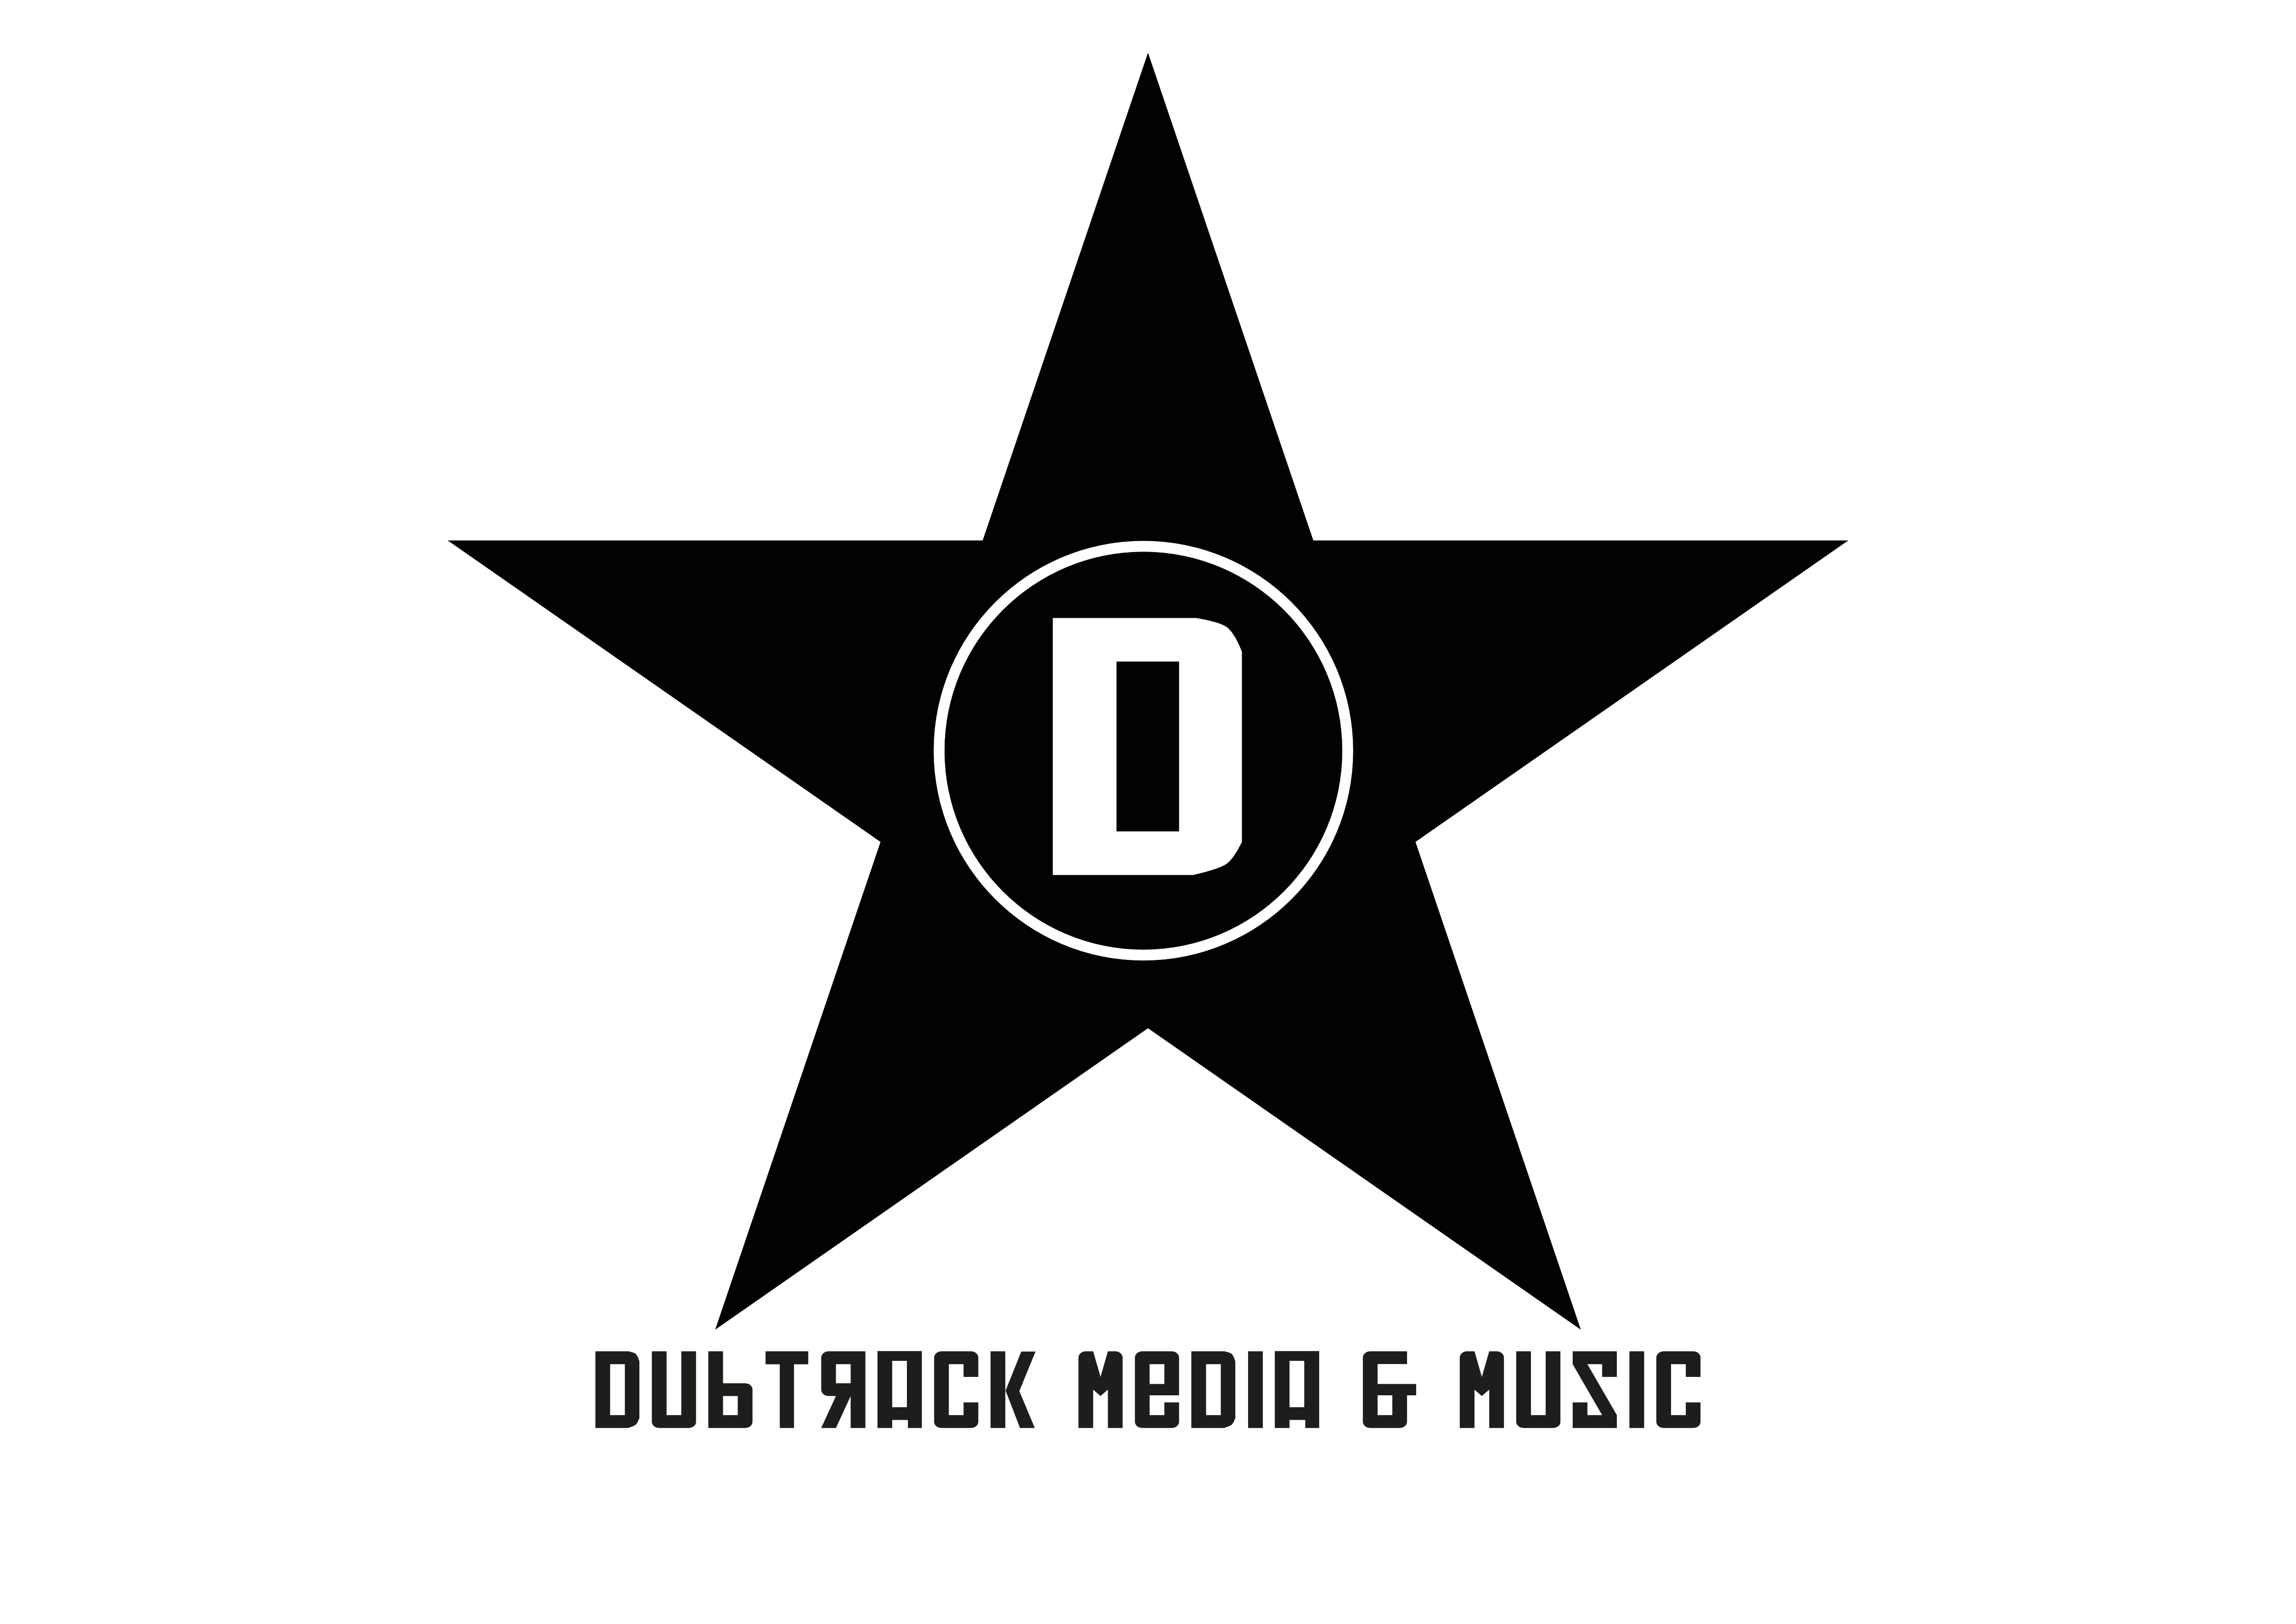 Dubtrack Media & Music